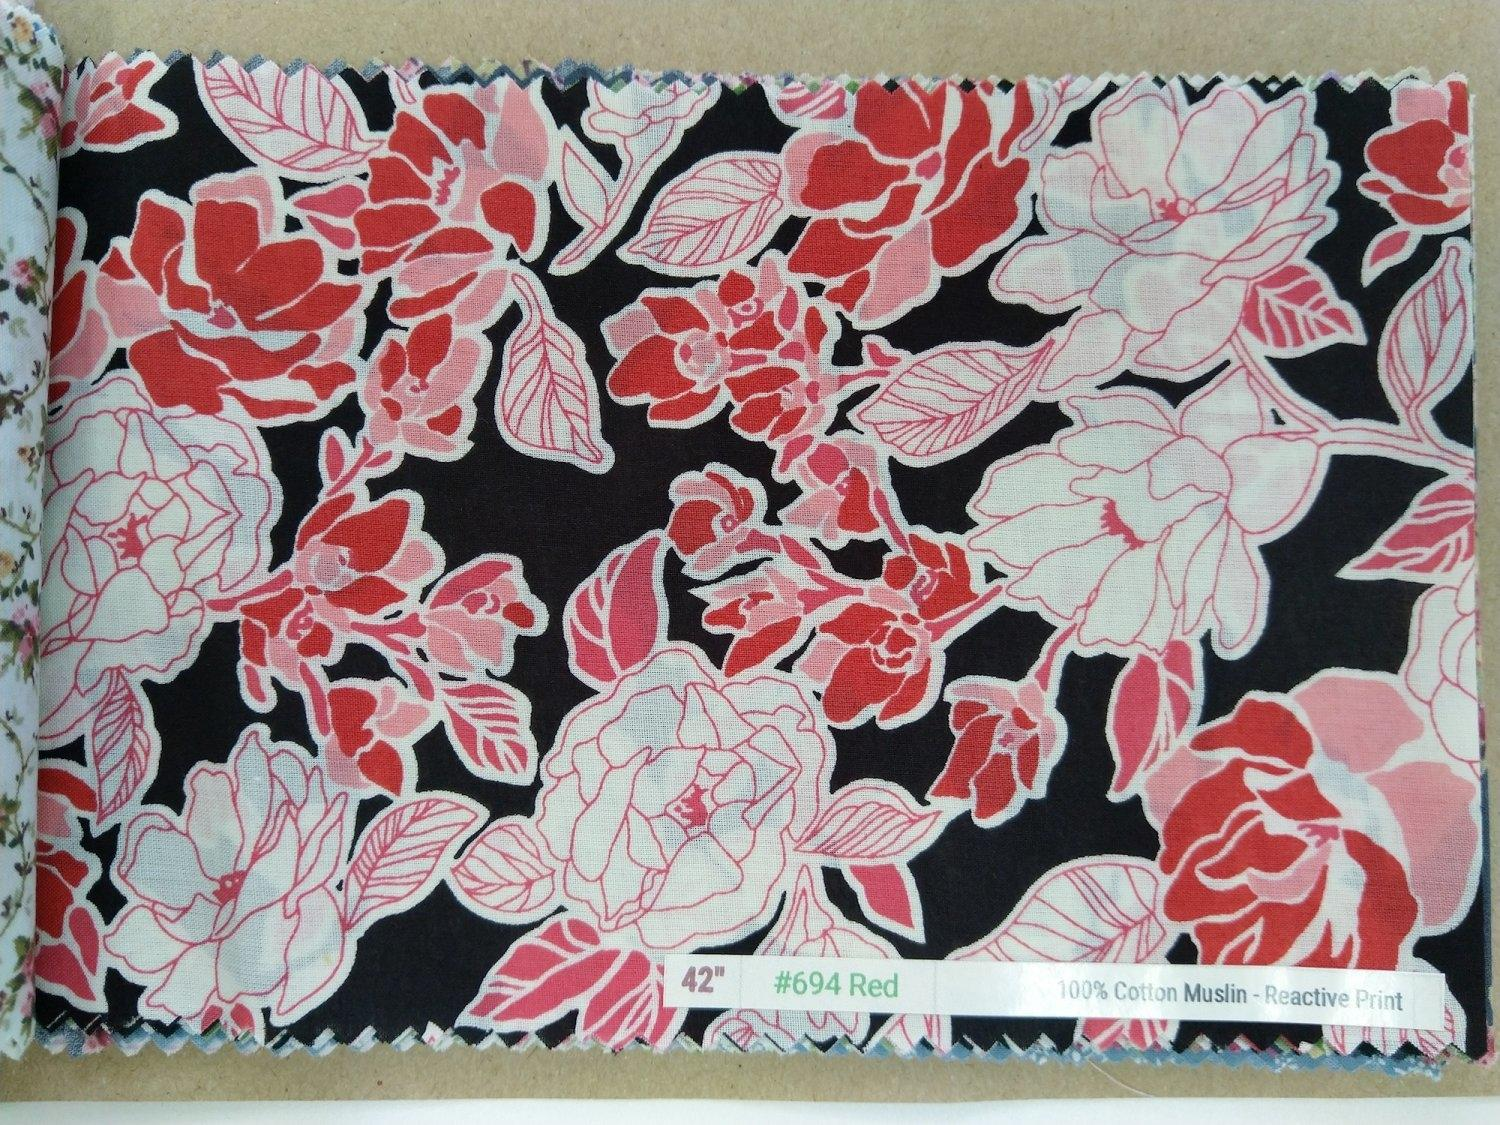 "6098 Cotton 42"" - Flower Print #694"